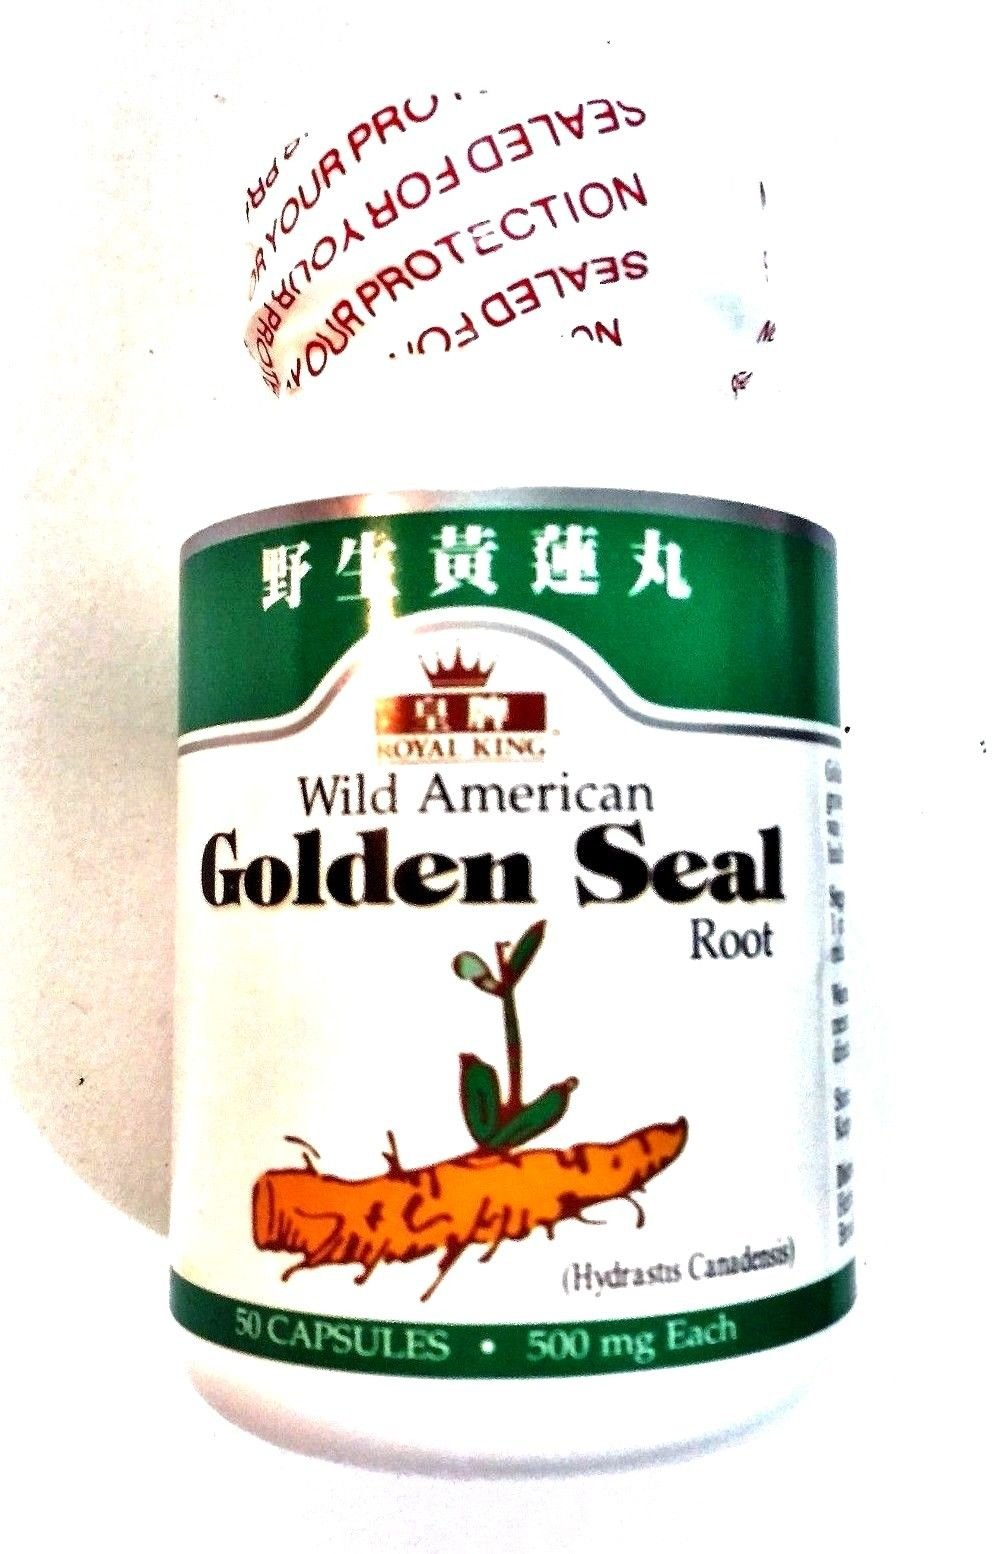 Royal King, Wild American Golden Seal Herb 500 mg, 50 Capsules Golden seal root